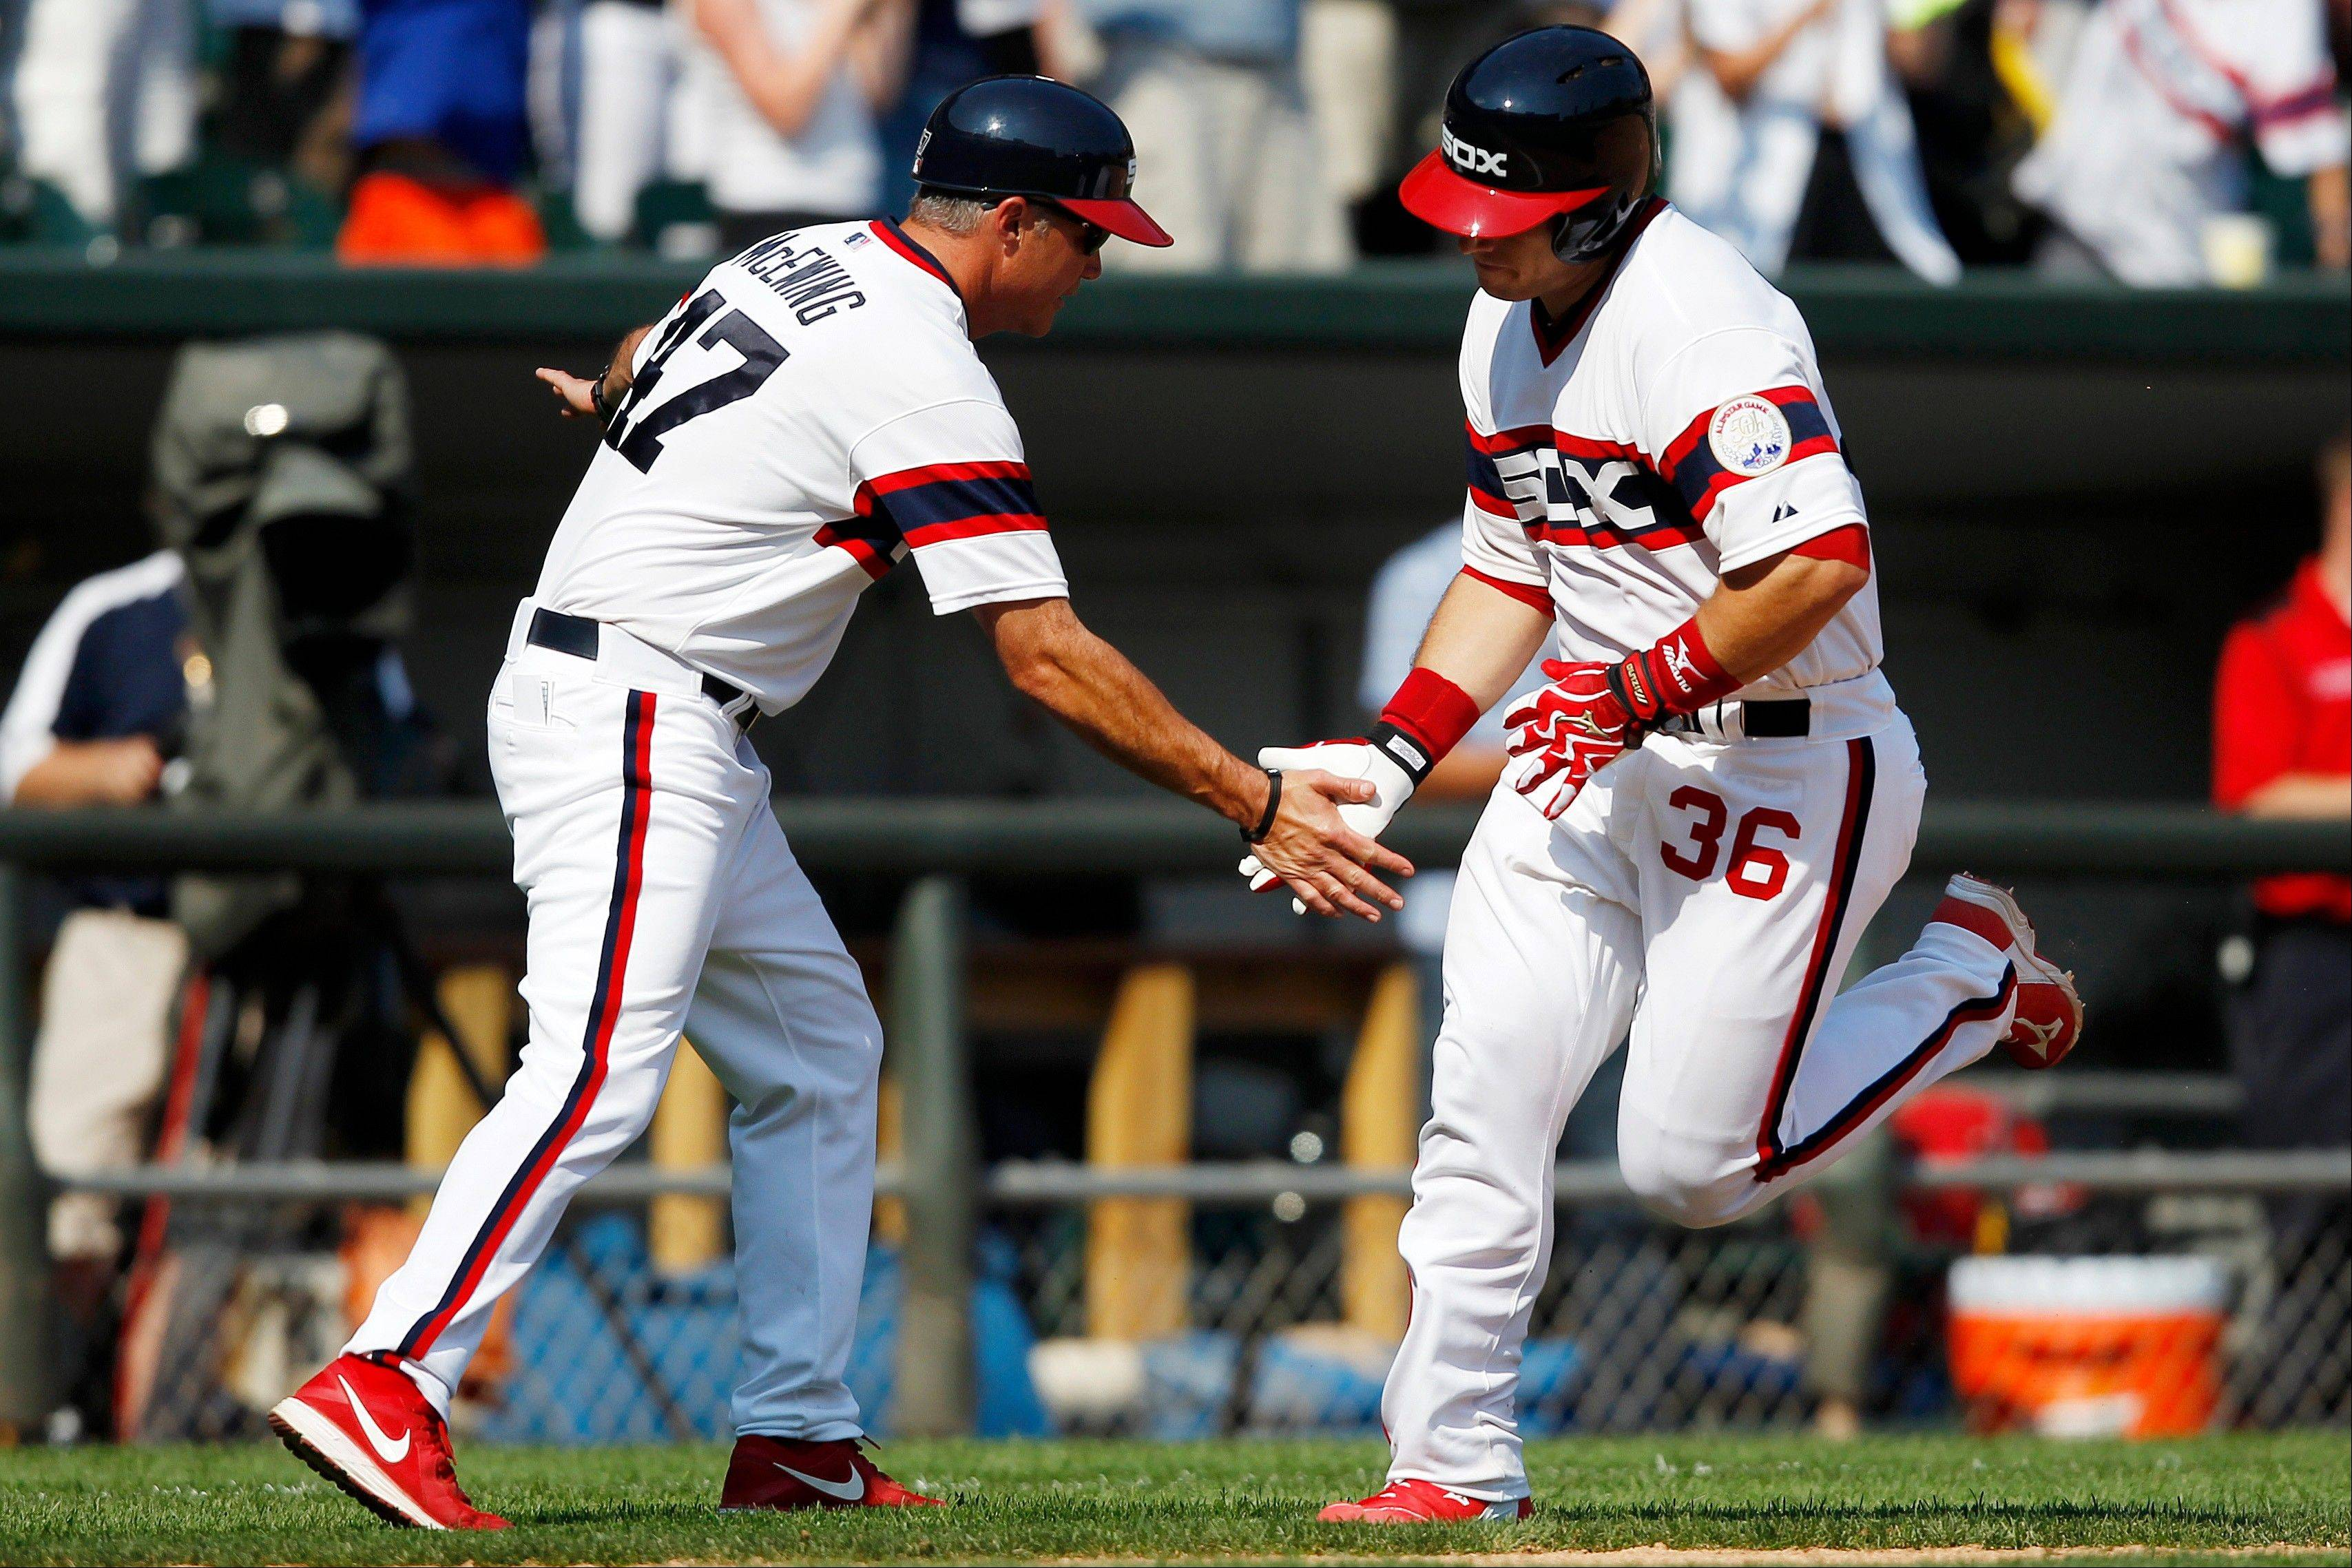 White Sox hitter Josh Phegley is congratulated by third base coach Joe McEwing after hitting a home run against the Texas Rangers during Sunday's seventh inning at U.S. Cellular Field.